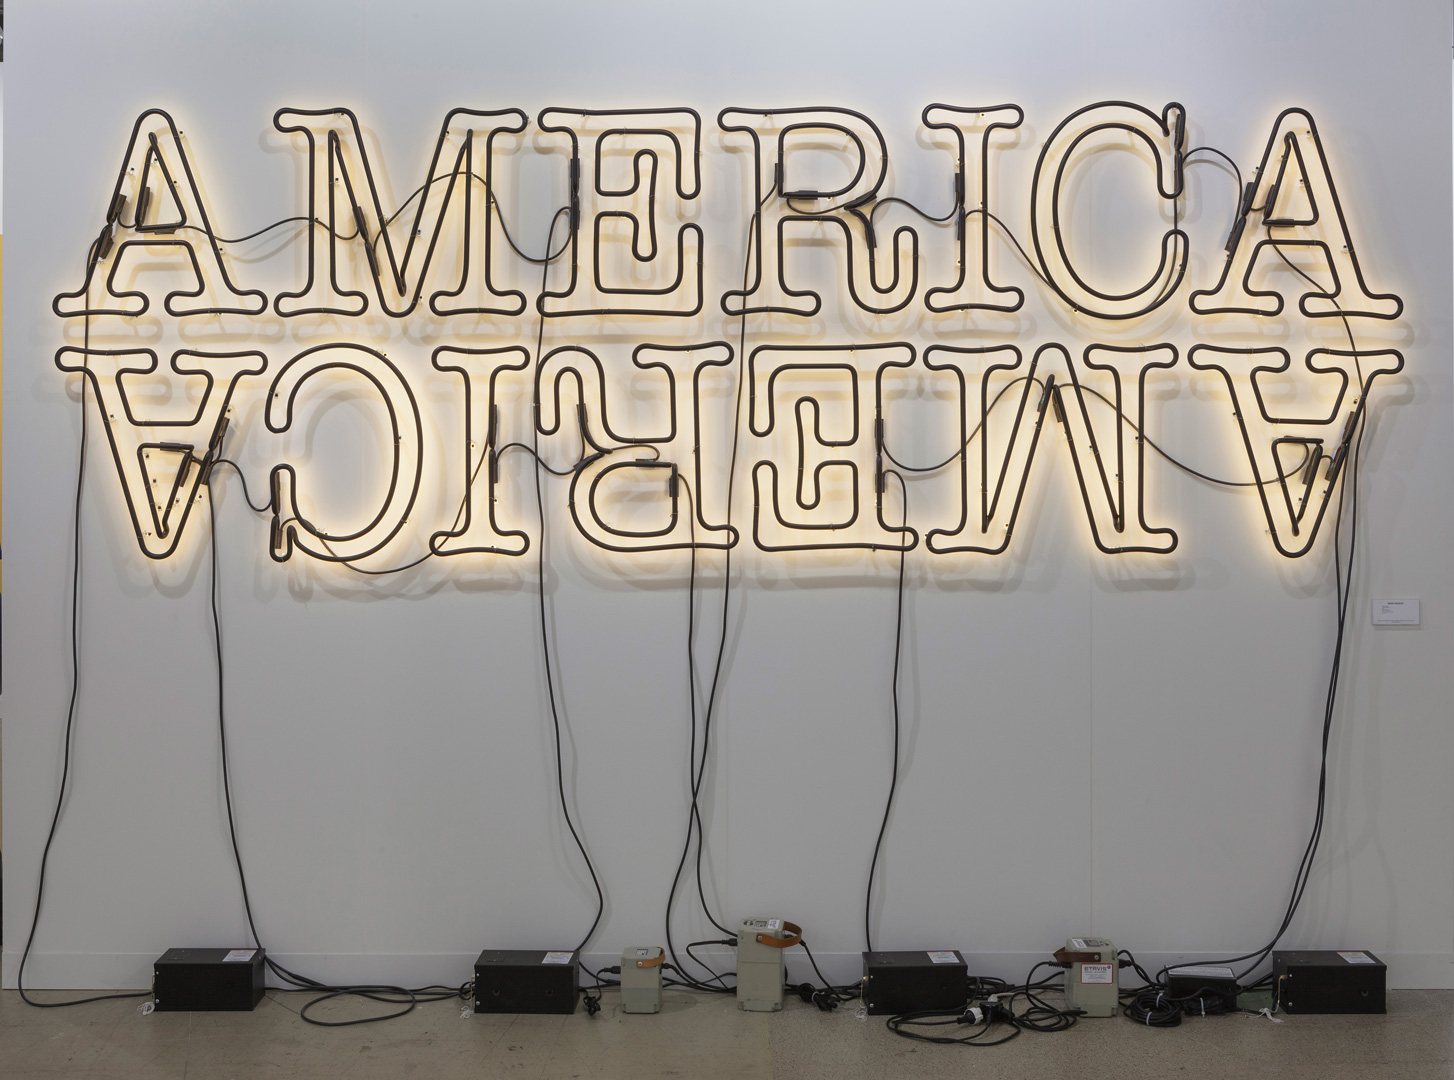 Glenn Ligon - Double America 2, 2014, neon and paint